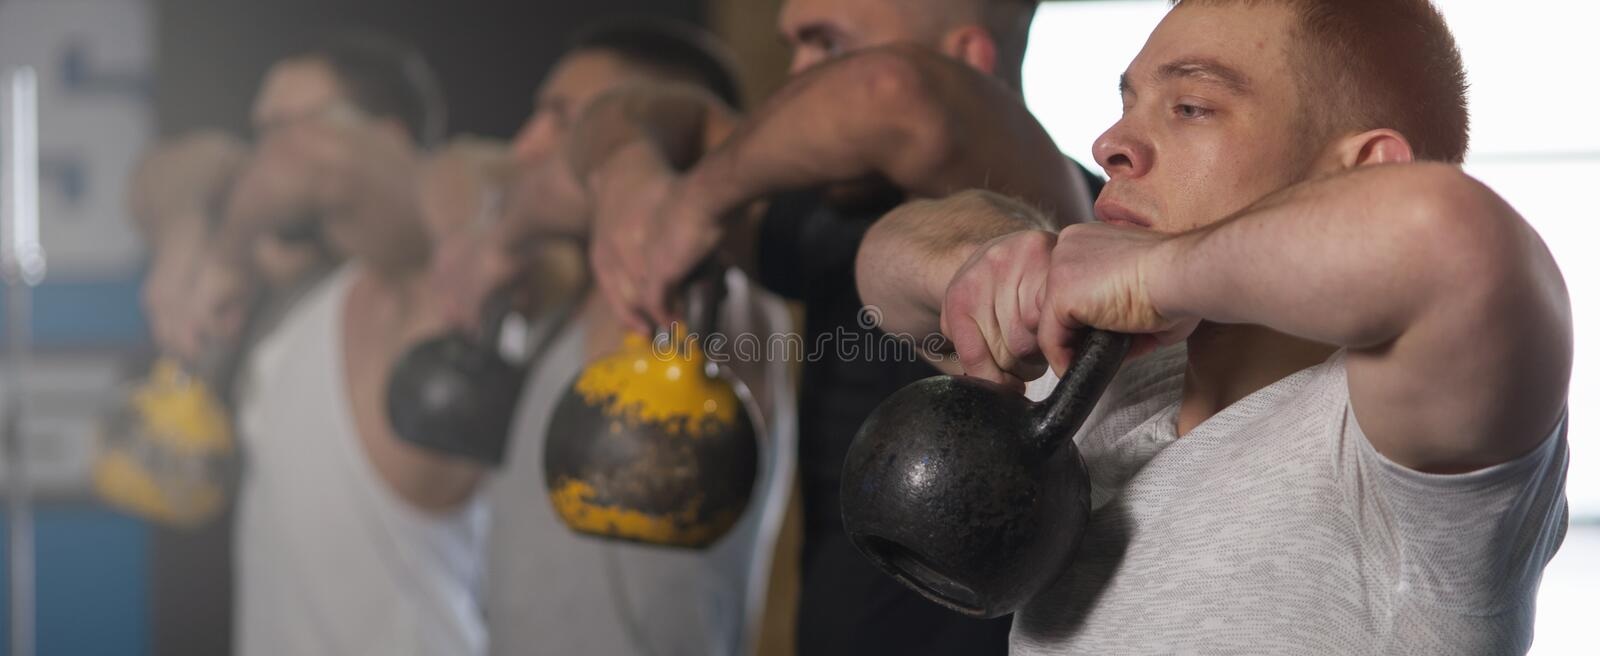 Side View - Fit Young Men Training With Kettlebells in Gym. Sporty Male Adults During Workout Session. Strength Training, Powerlifting and Sports stock photos